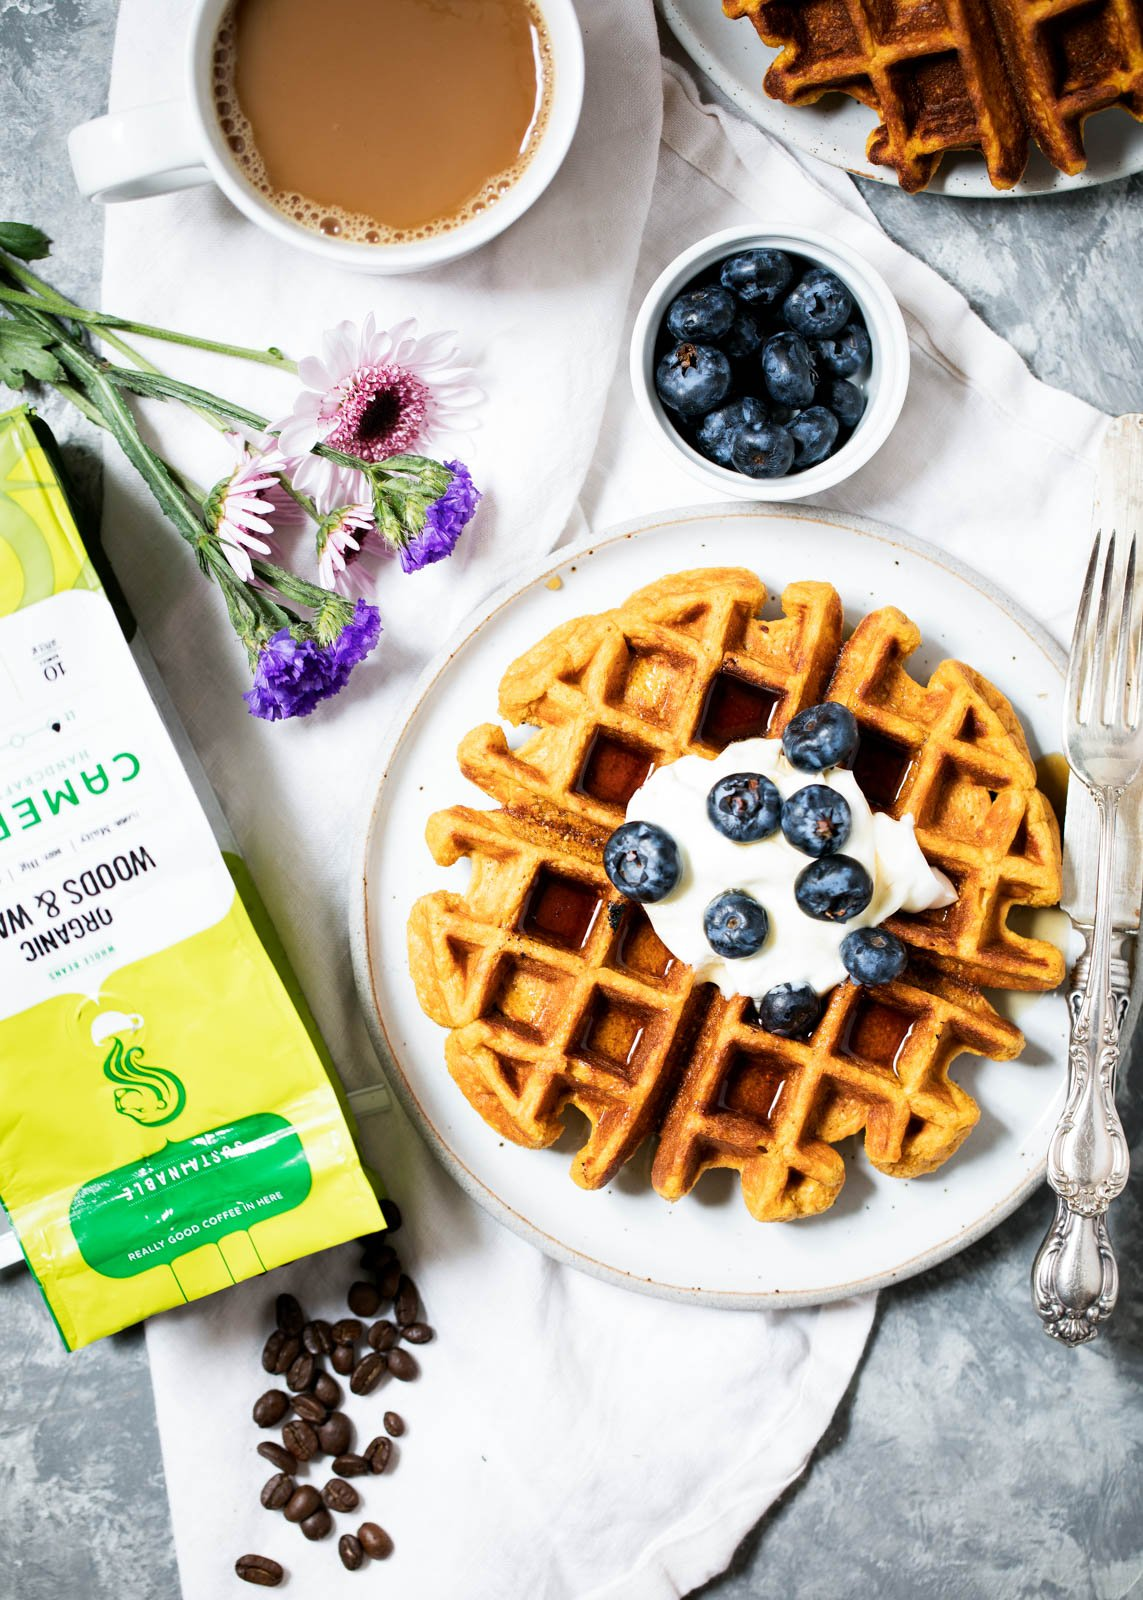 Sweet potato protein waffles on a plate topped with blueberries next to a cup of coffee